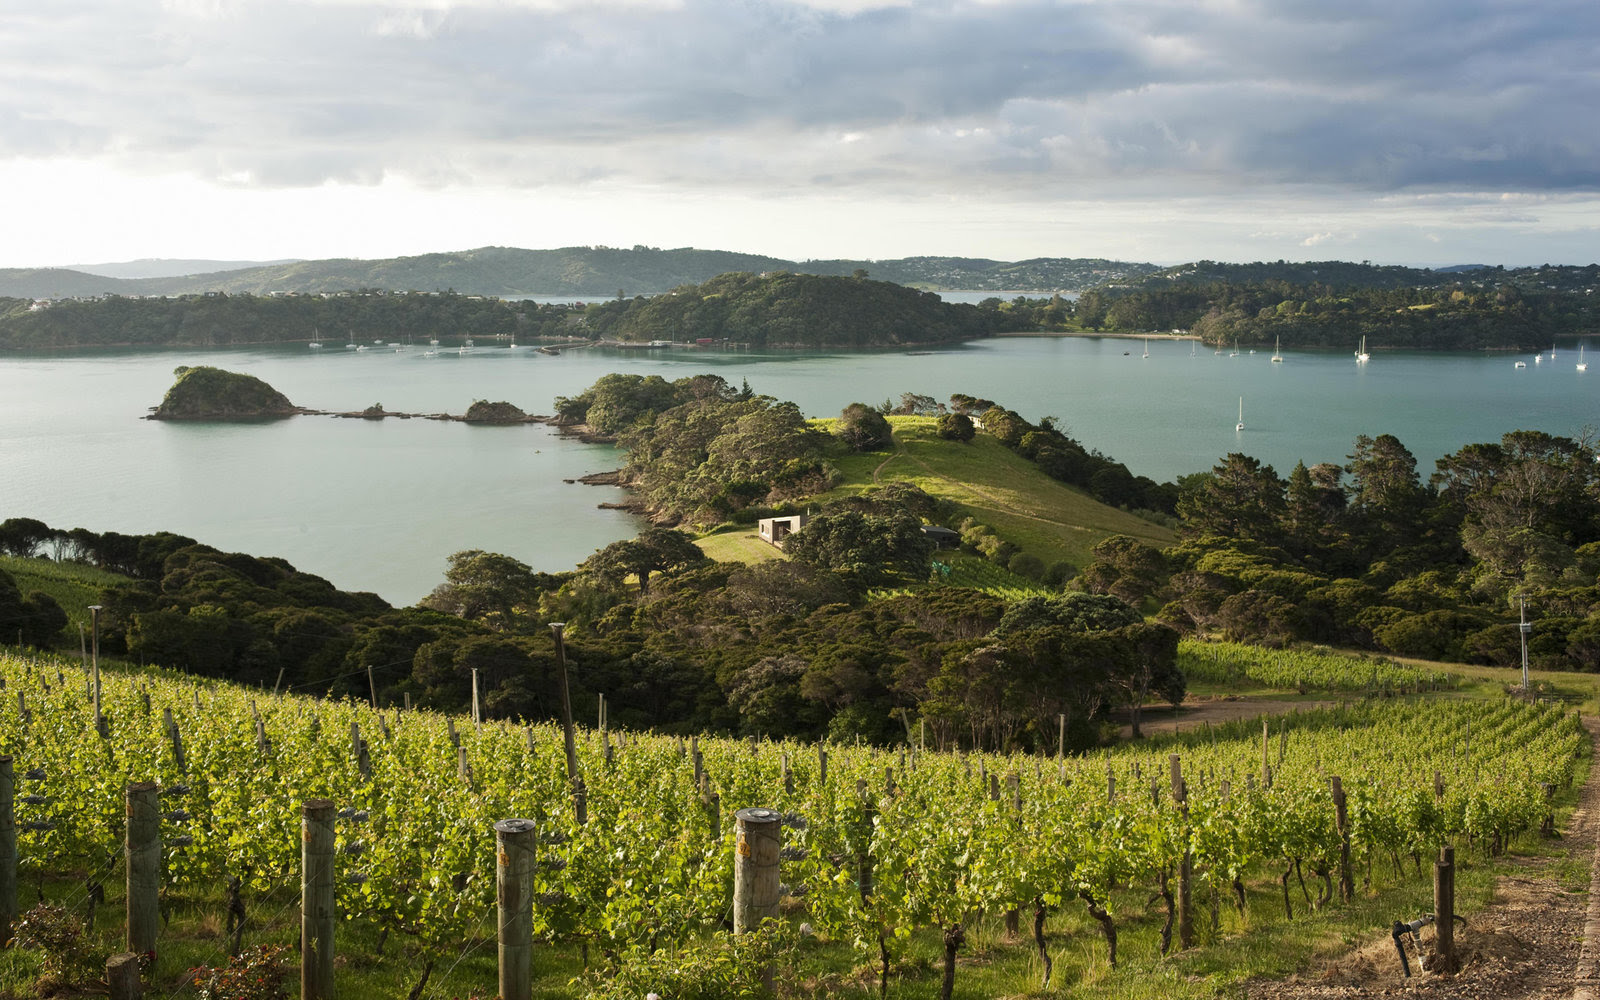 Late evening sun highlights grape vines overlooking Kennedy Point, Waiheke Island, New Zealand